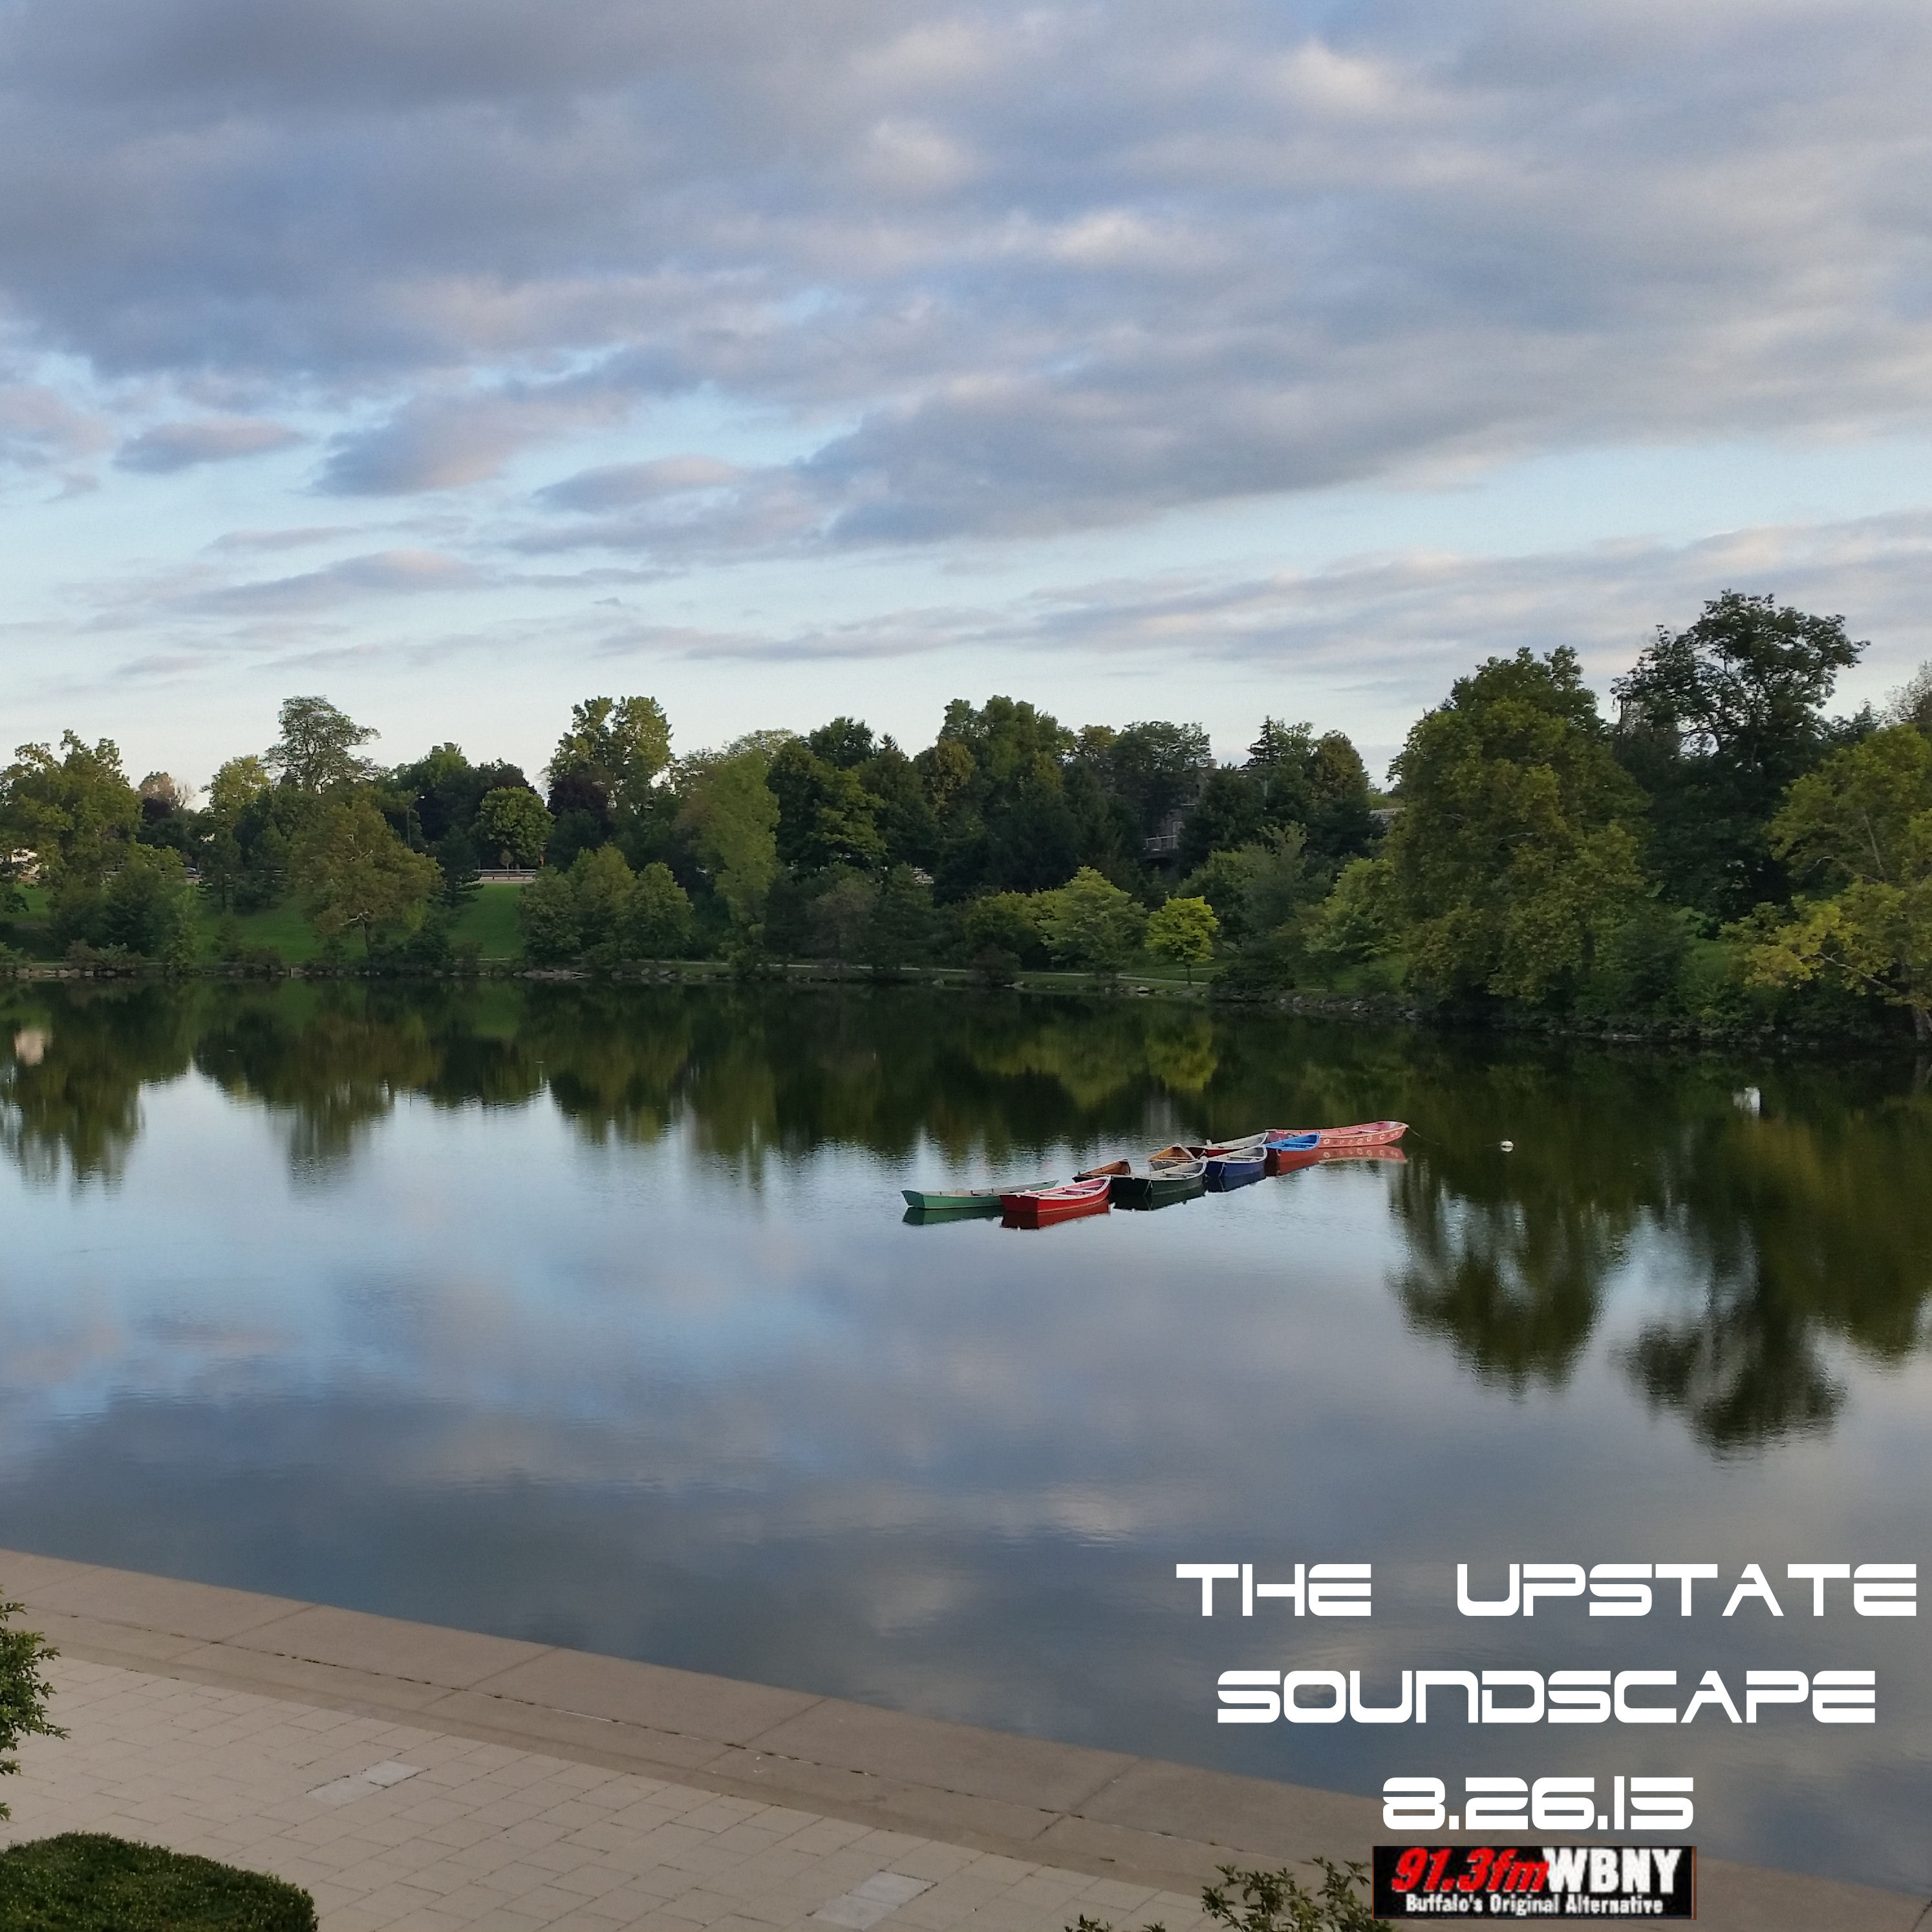 The Upstate Soundscape